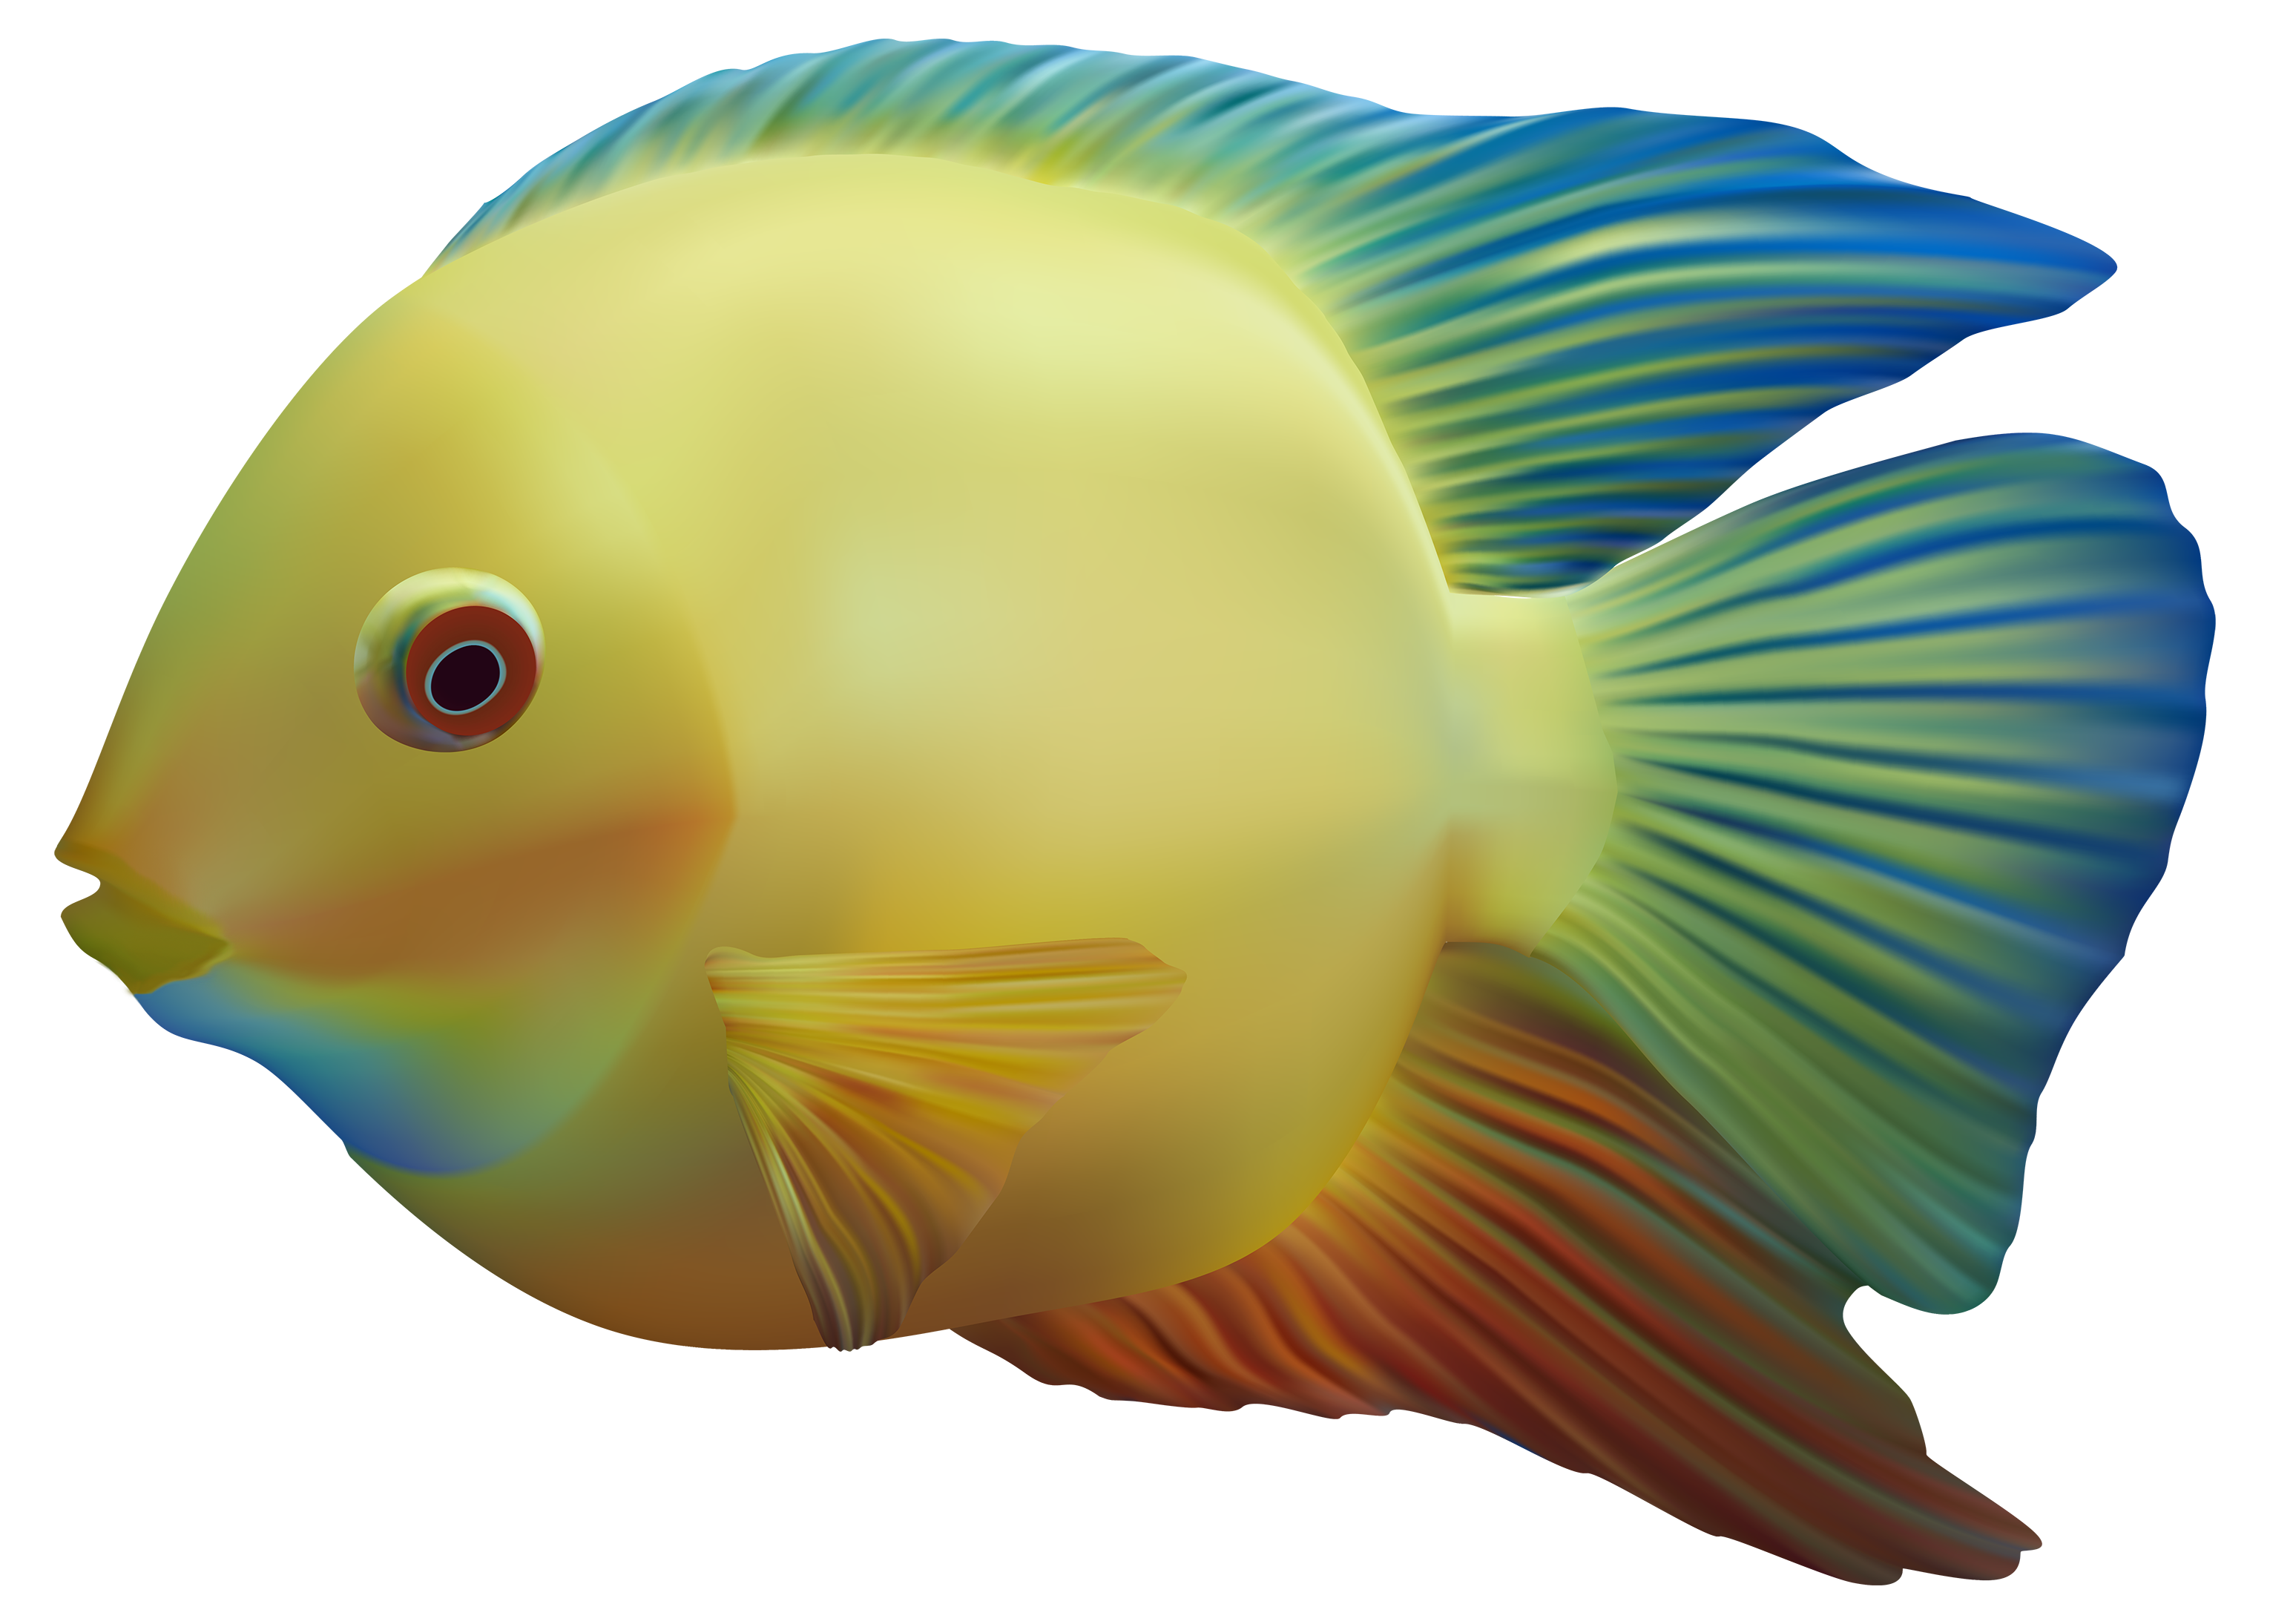 Fish png image free. Tuna clipart transparent background